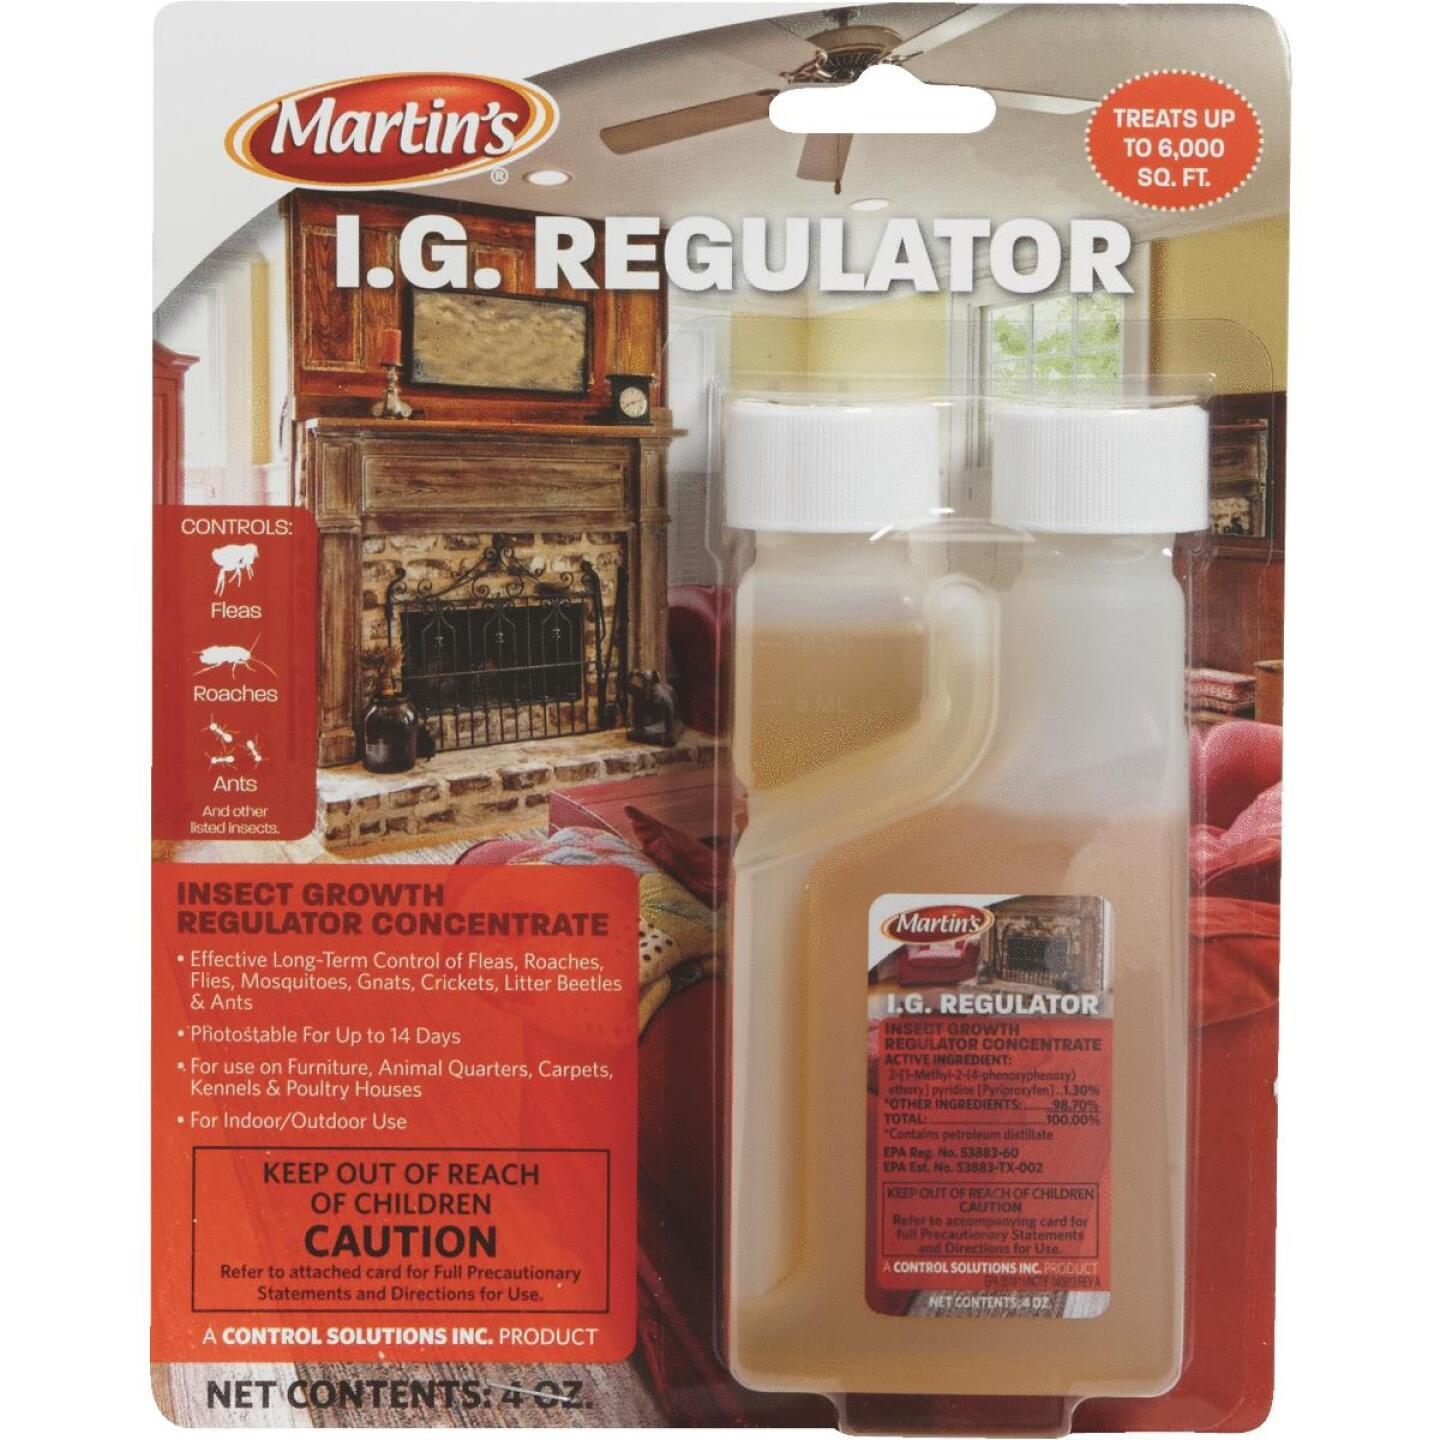 Martin's IG Regulator 4 Oz. Concentrate Insect Growth Regulator Image 1